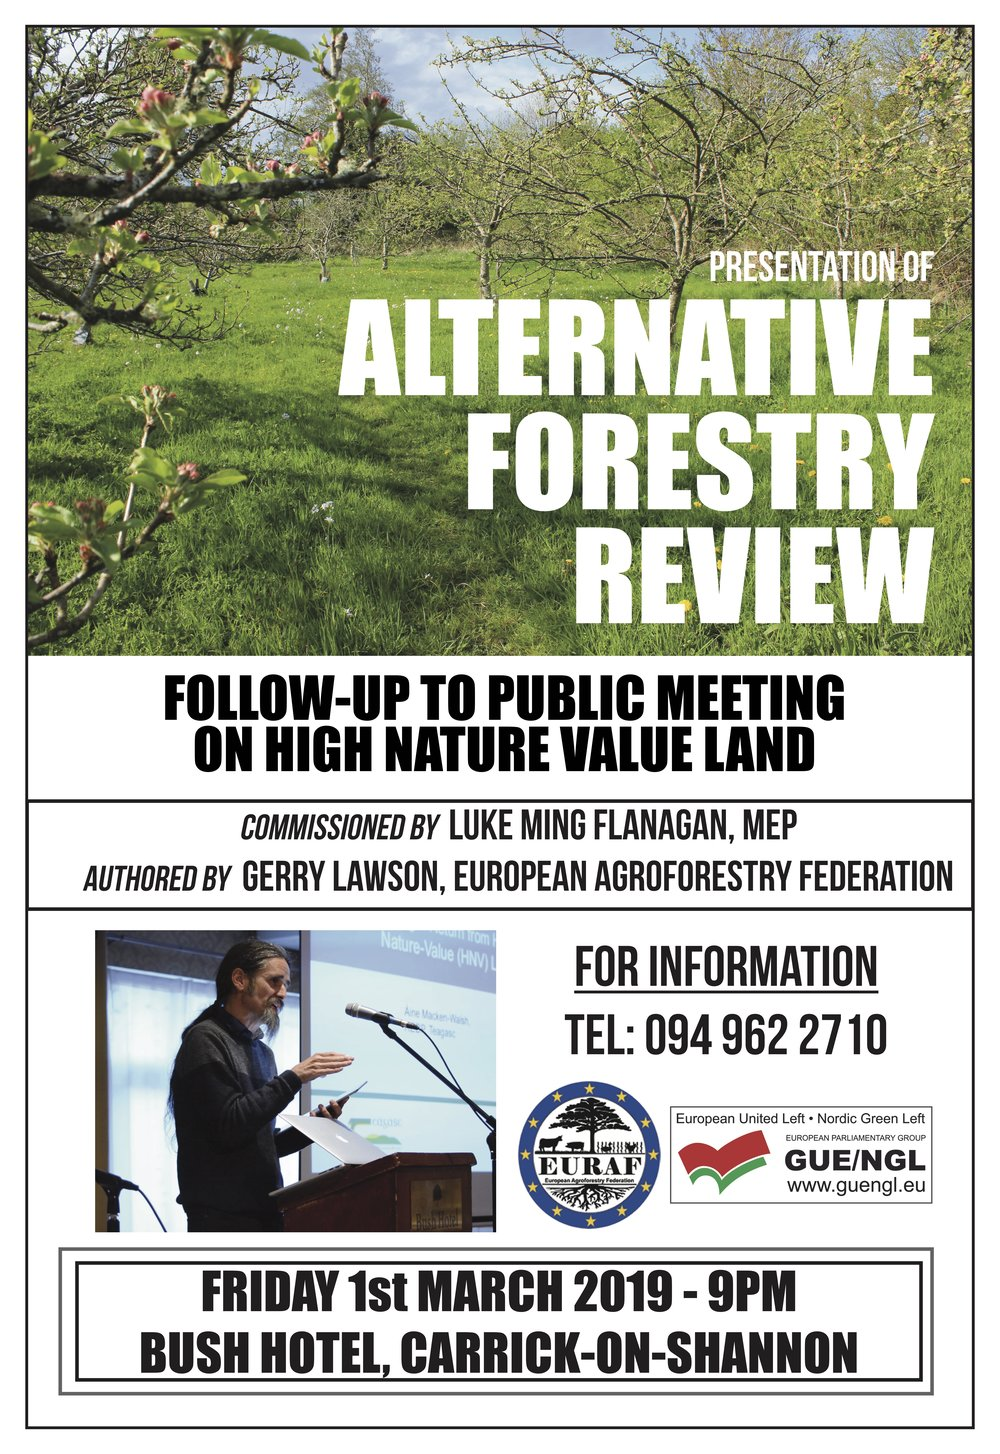 Evaluation of the Midterm Review of the Irish Forestry Programme 2014 - 2020 - By Gerry Lawson - EURAF (European Agroforestry Federation)Commissioned by Luke Ming Flanagan MEP